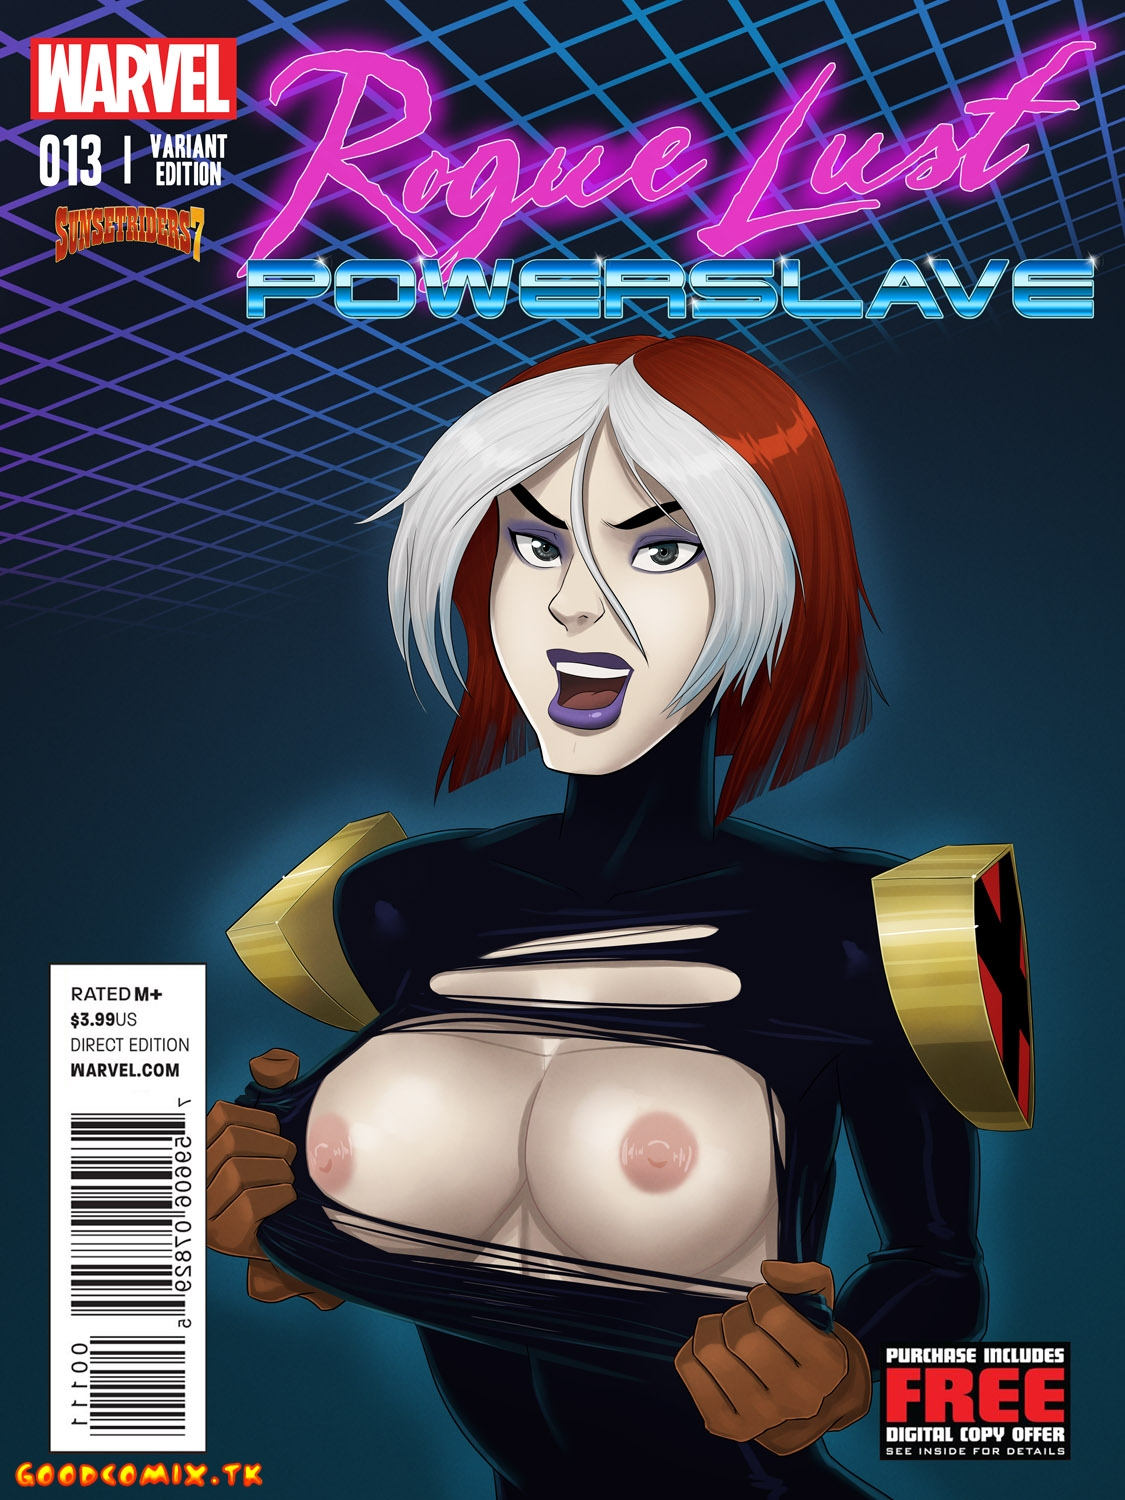 Goodcomix X-Men - [SunsetRiders7] - Rogue Lust Powerslave